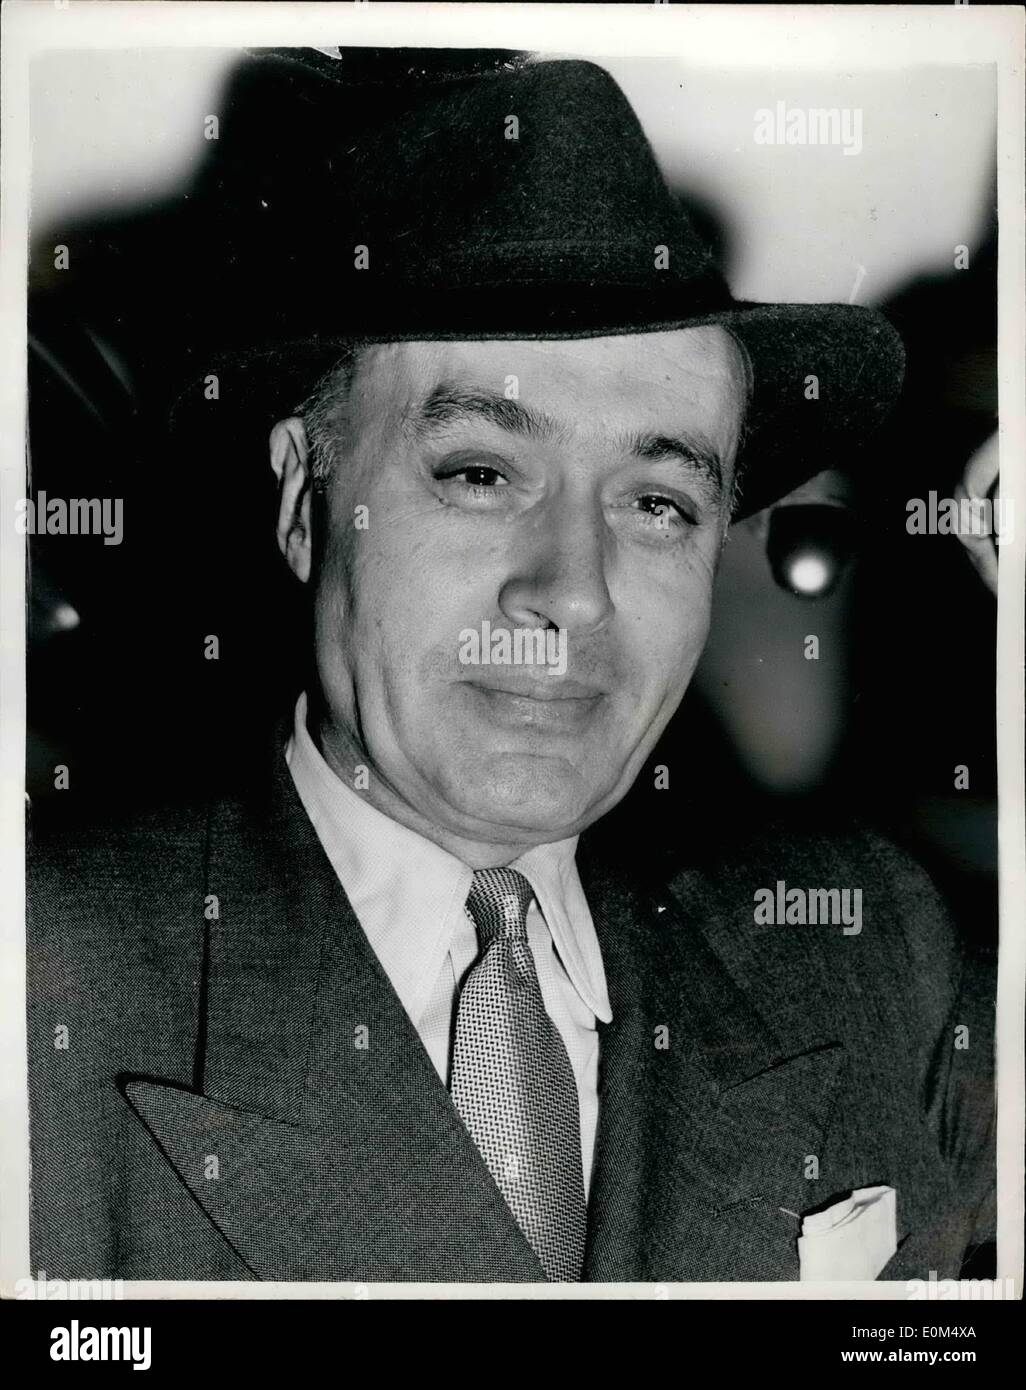 Jul. 07, 1953 - Hollywood's screen 'lover' leaves for the States. Charles Boyer.: Photo shows Charles Boyer the Hollywood screen 'lover' seen when he left Waterloo Station this morning on the Queen Mary Boat train - for New York. - Stock Image